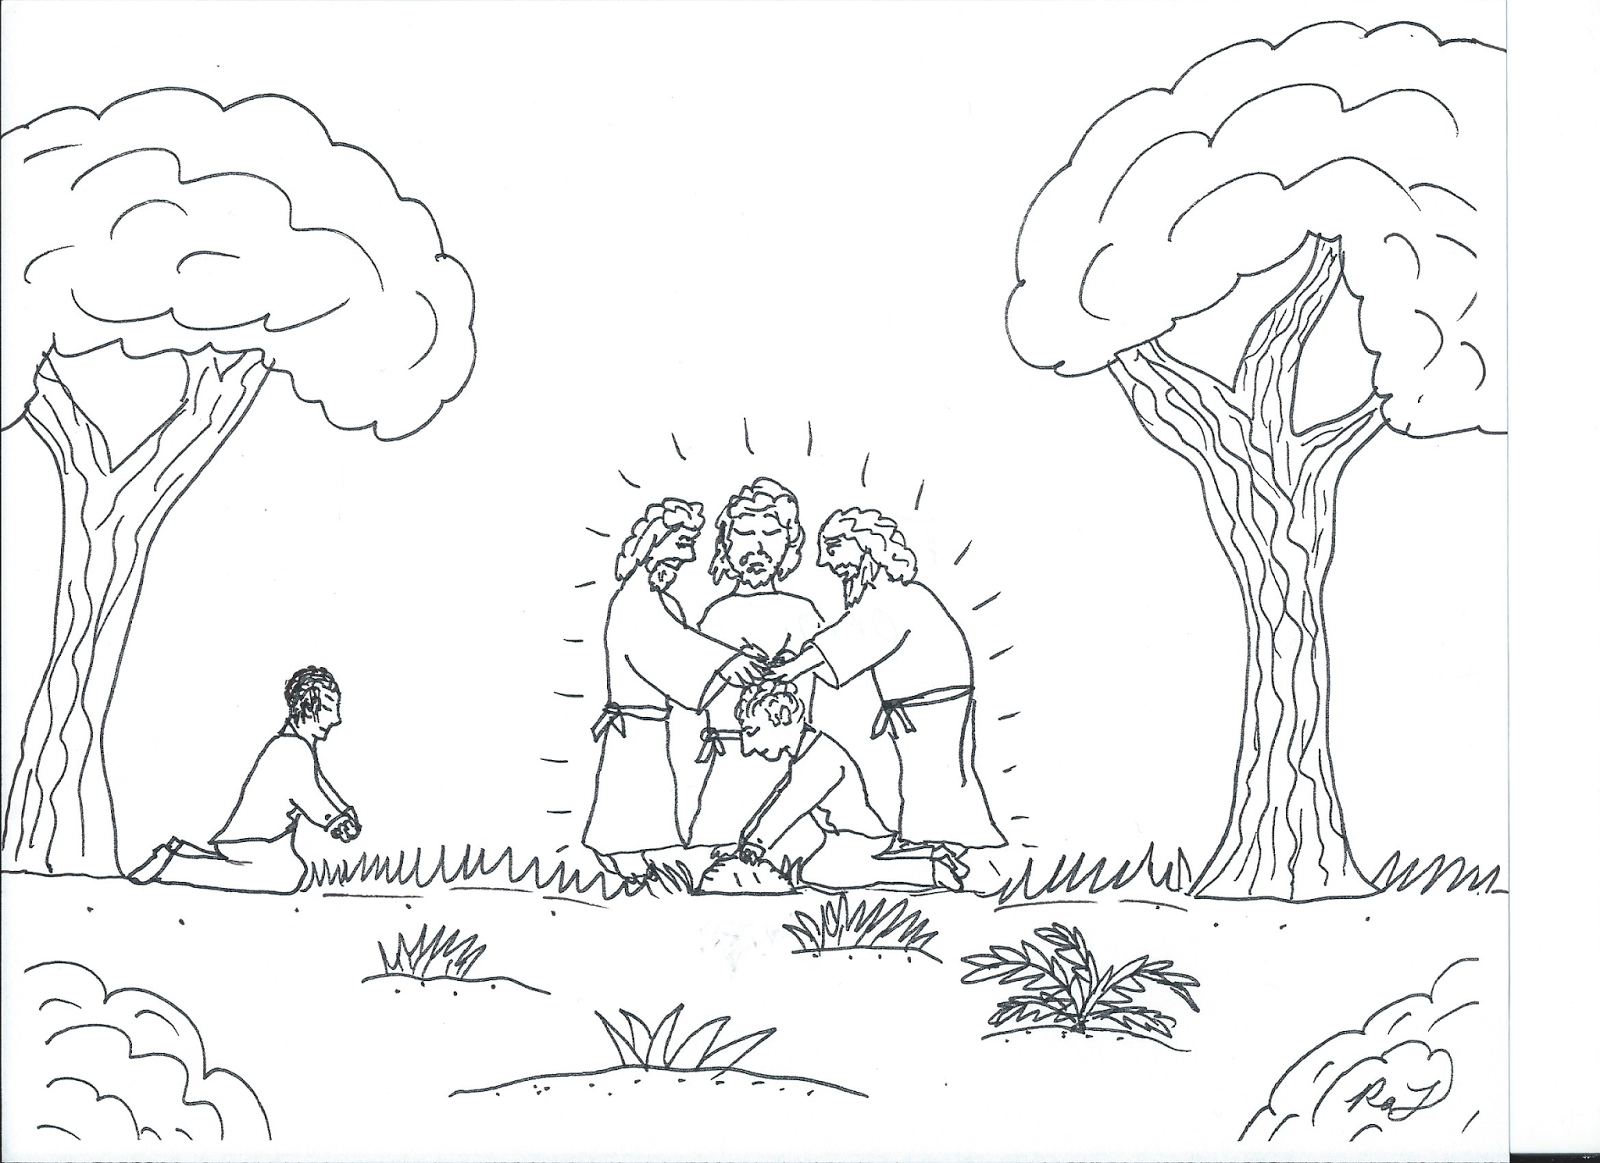 Robin S Great Coloring Pages Joseph Smith And Brigham